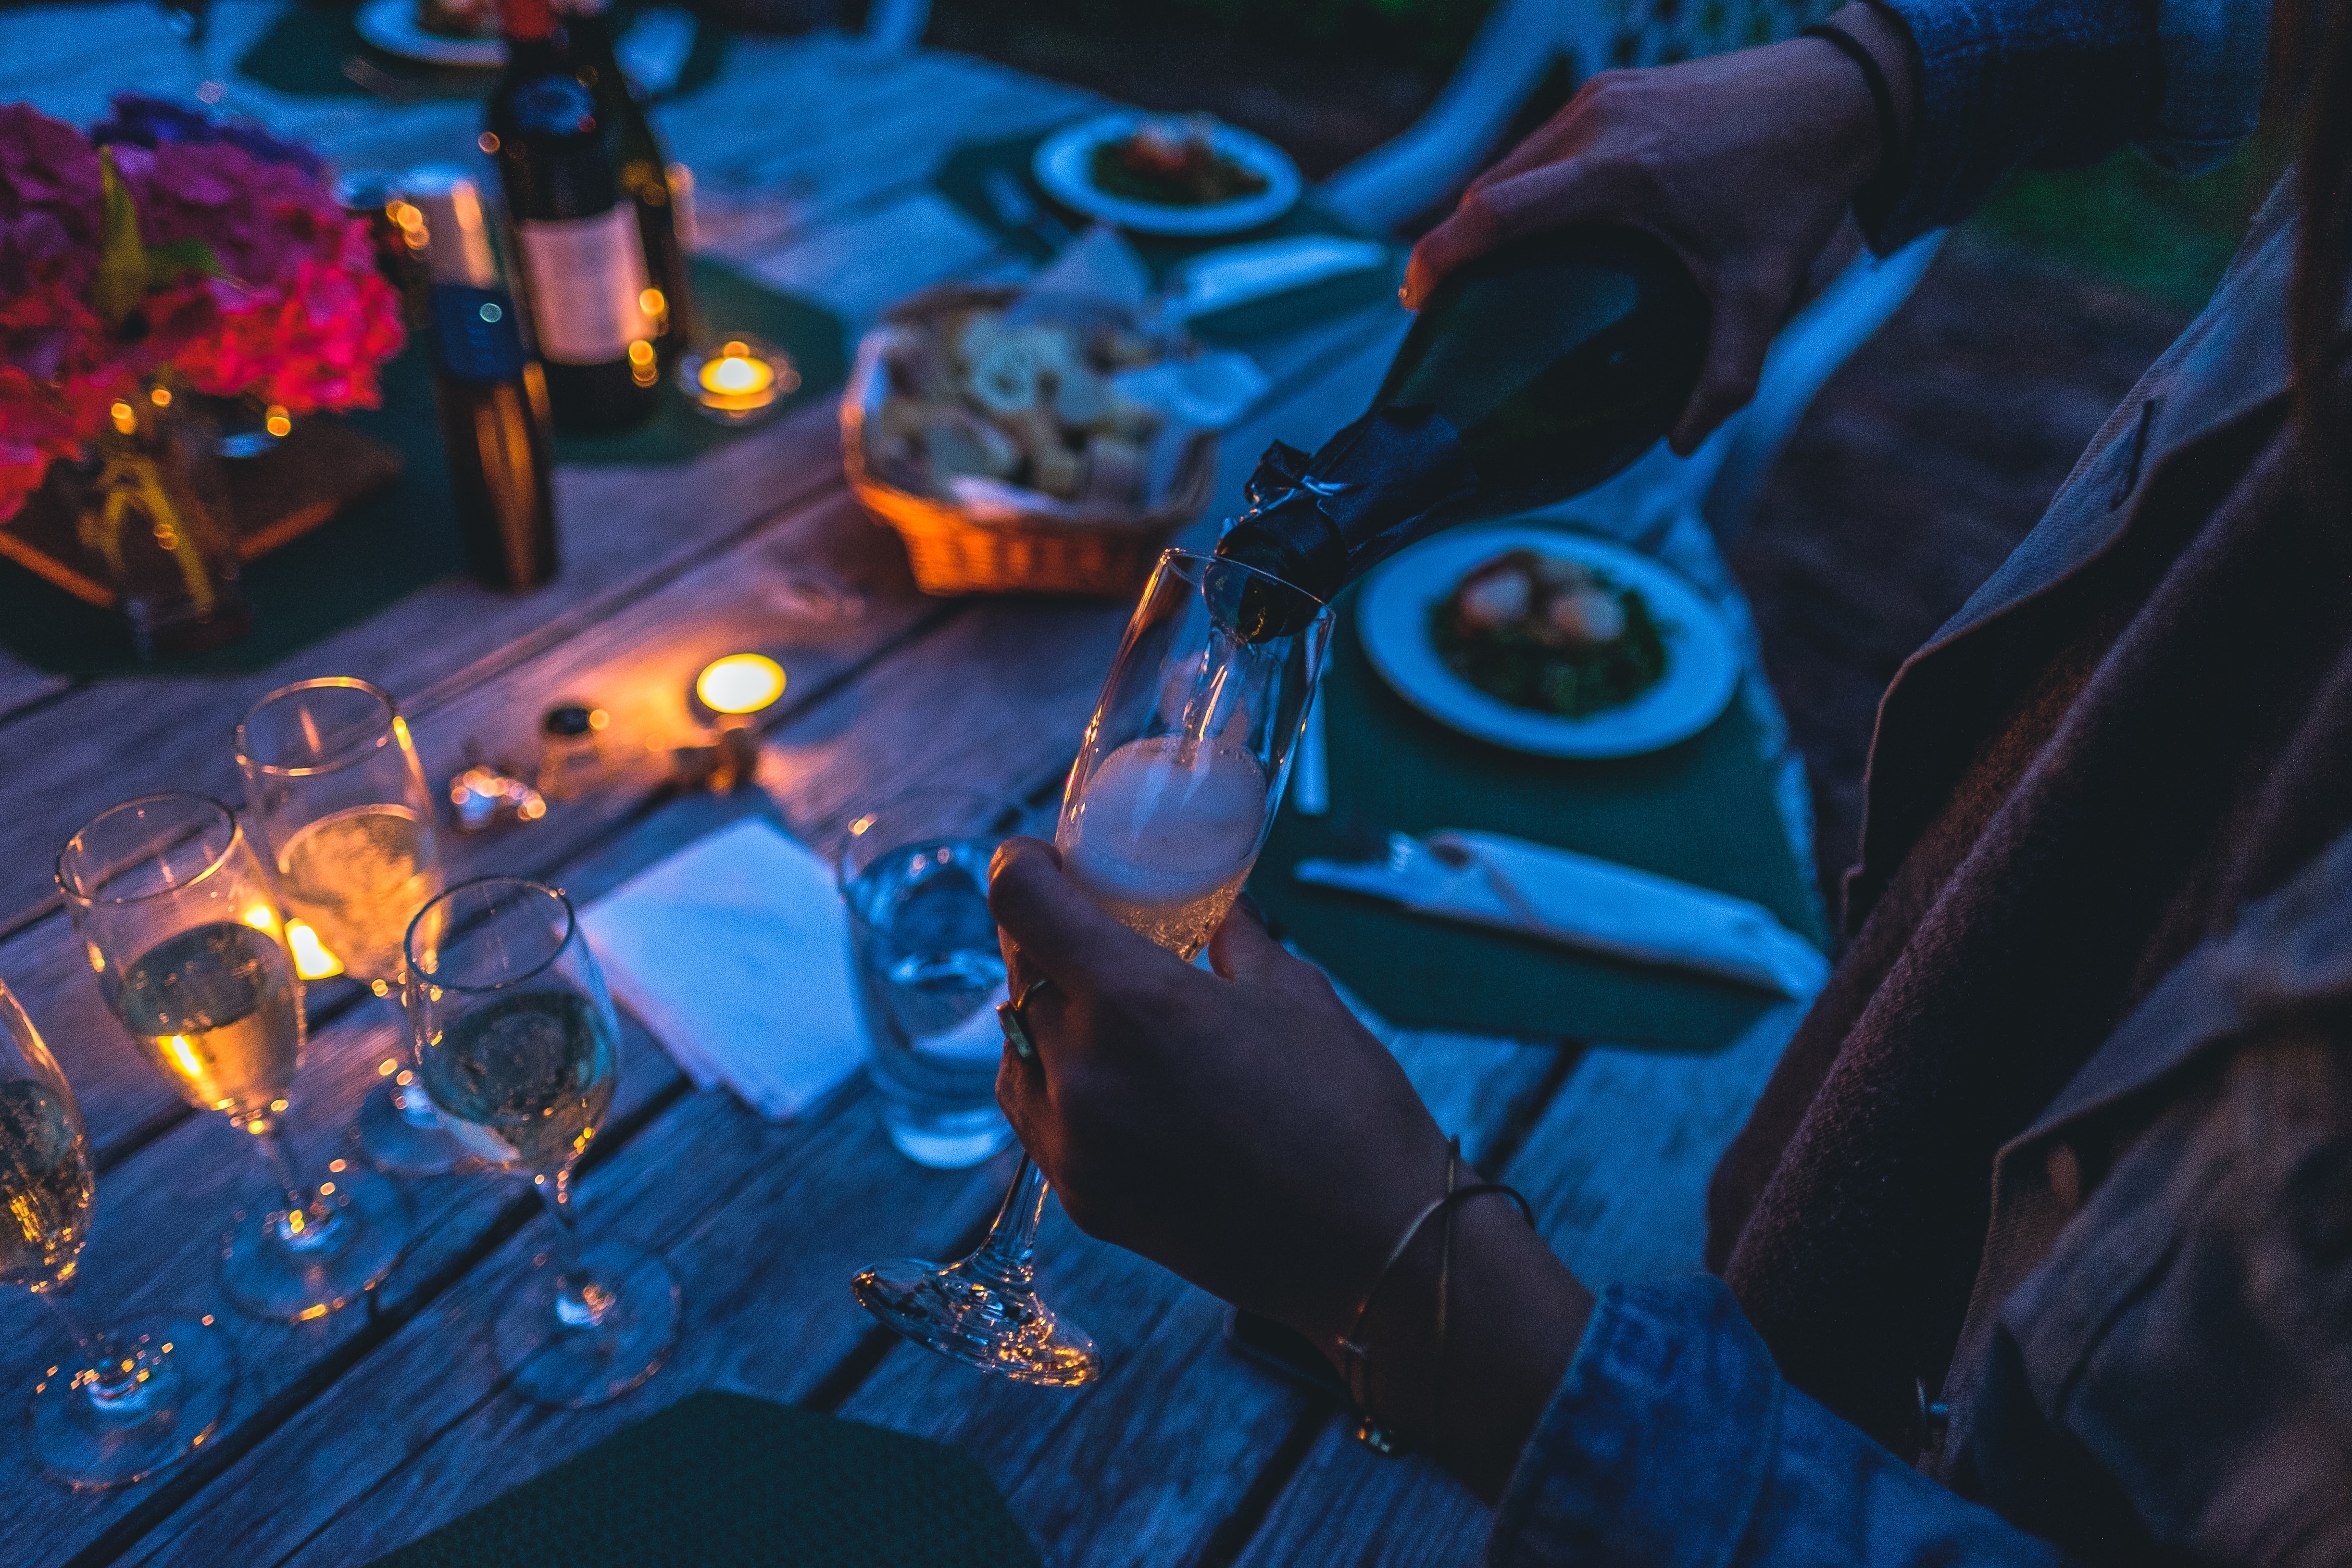 A person pouring champagne into a tall glass at a large outdoor table in the evening